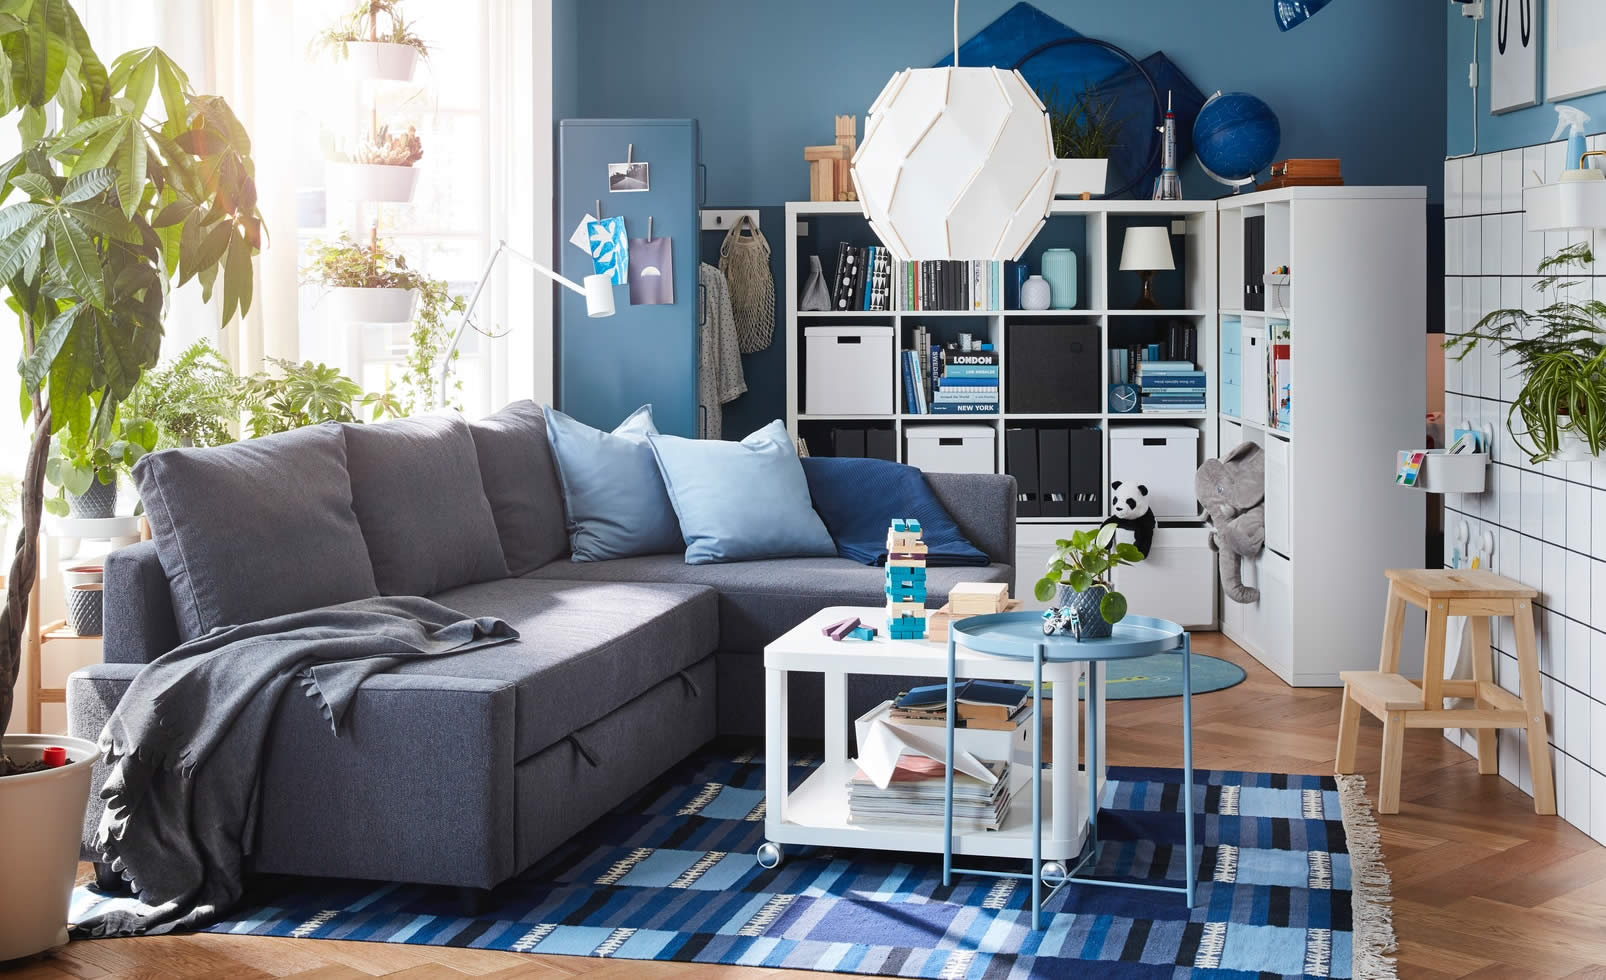 IKEA Ideas - A living room for sleep-ins